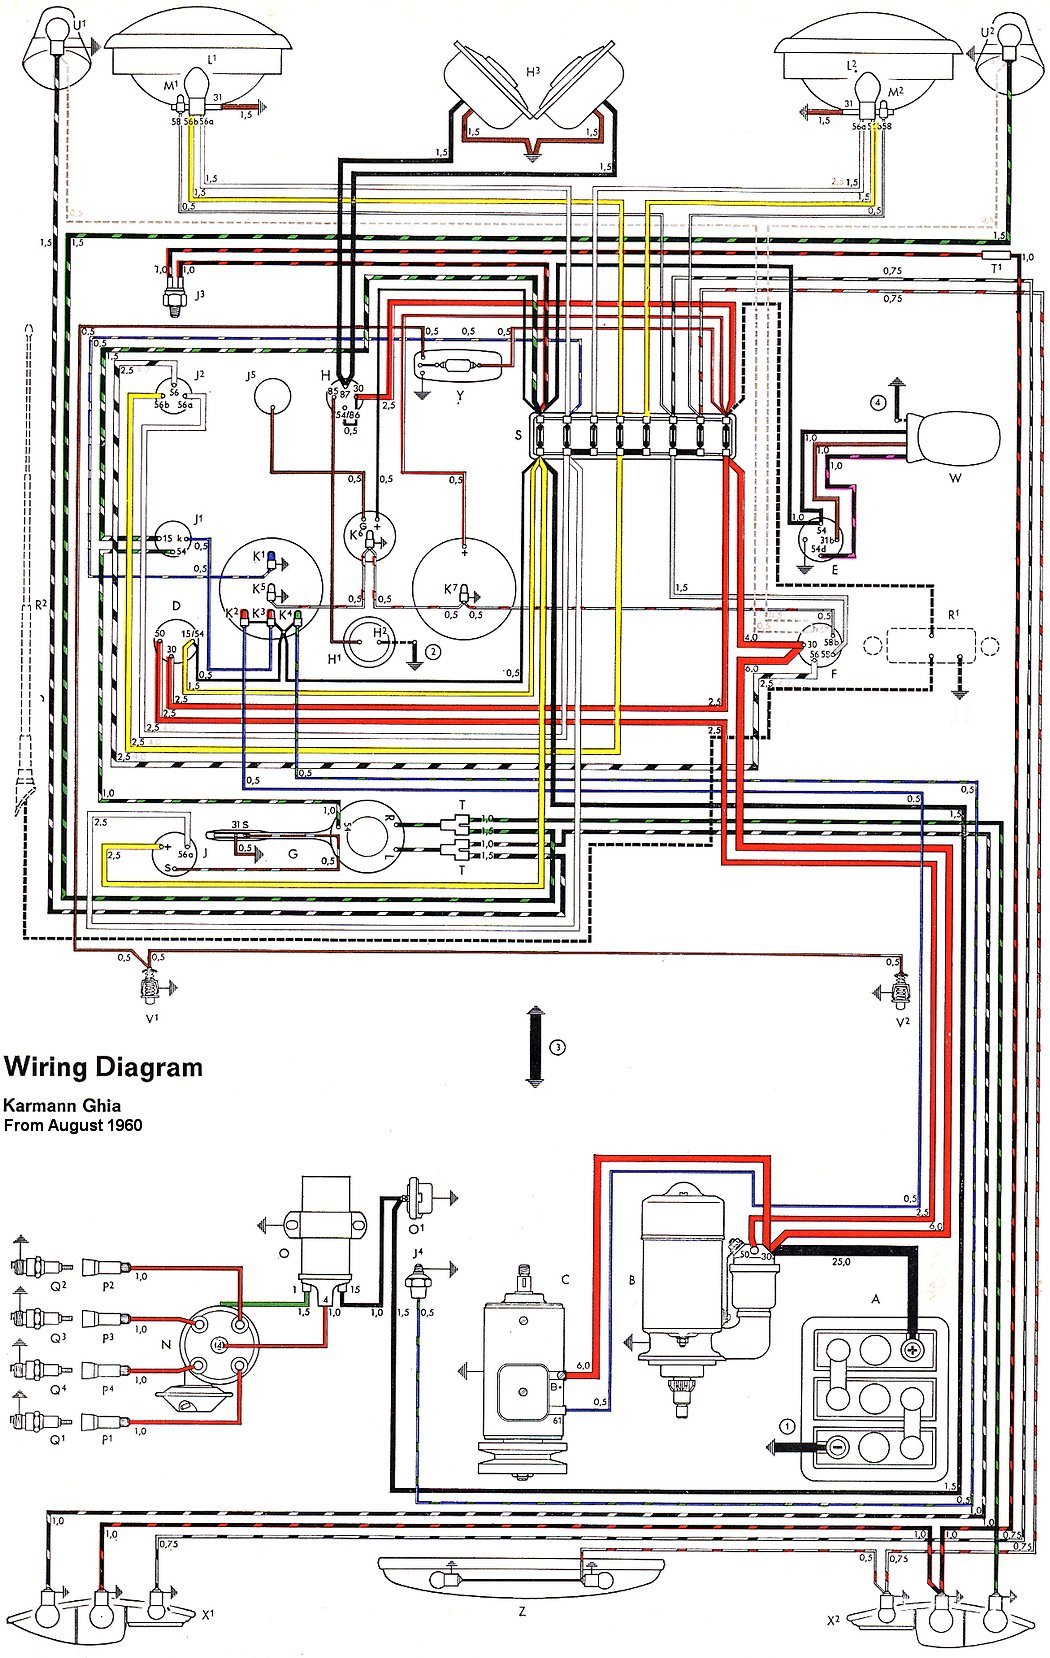 ghiawiring61-65 Understanding Car Wiring Diagrams on understanding schematic diagrams, understanding ladder diagrams, understanding foundation diagrams, understanding transformer diagrams, electronic circuit diagrams, understanding engineering drawings, understanding electrical diagrams, understanding circuits diagrams, pinout diagrams,